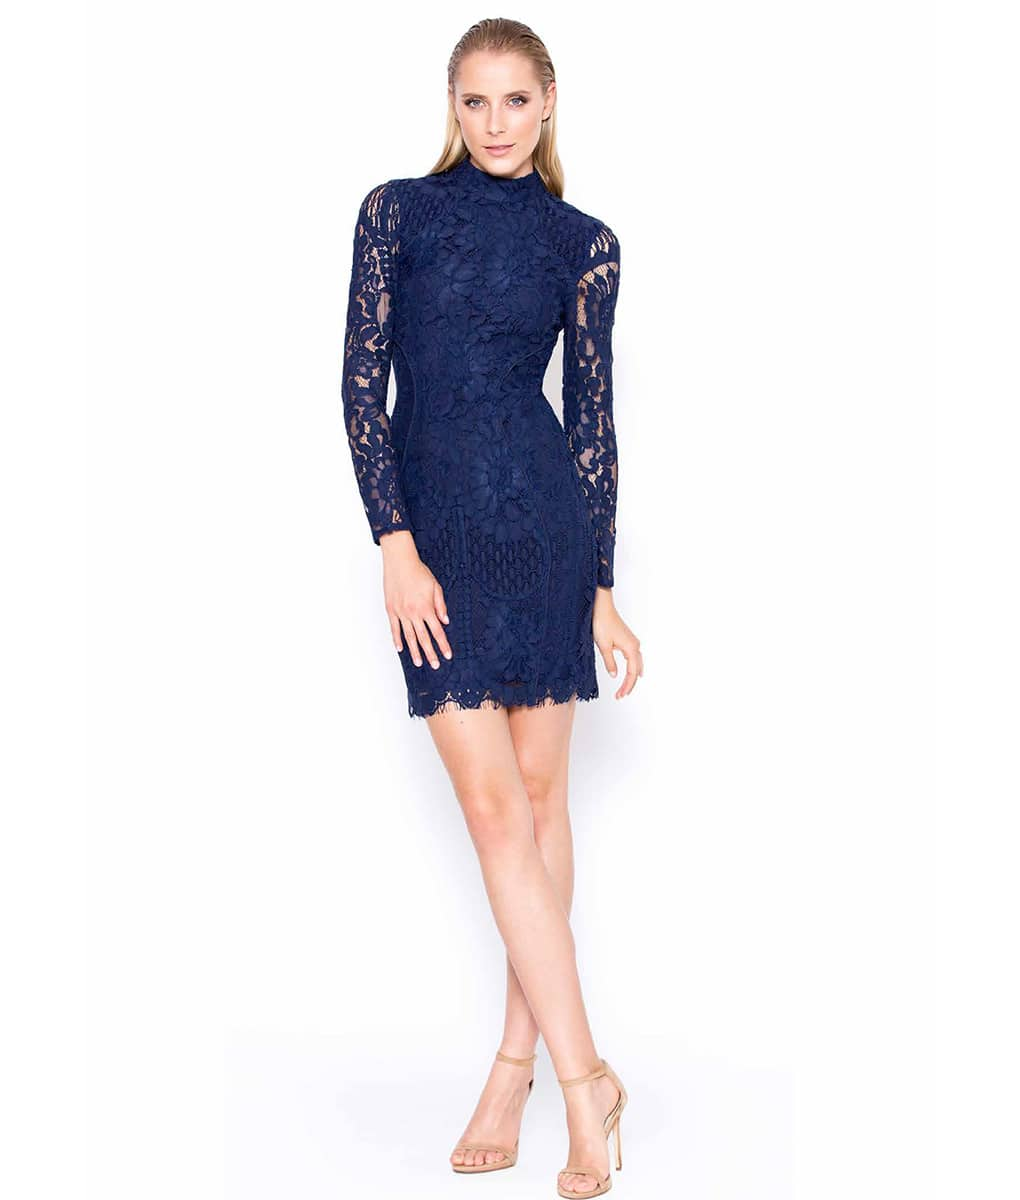 Lumier By Bariano - Navy Lace Long Sleeved Dress | Alila